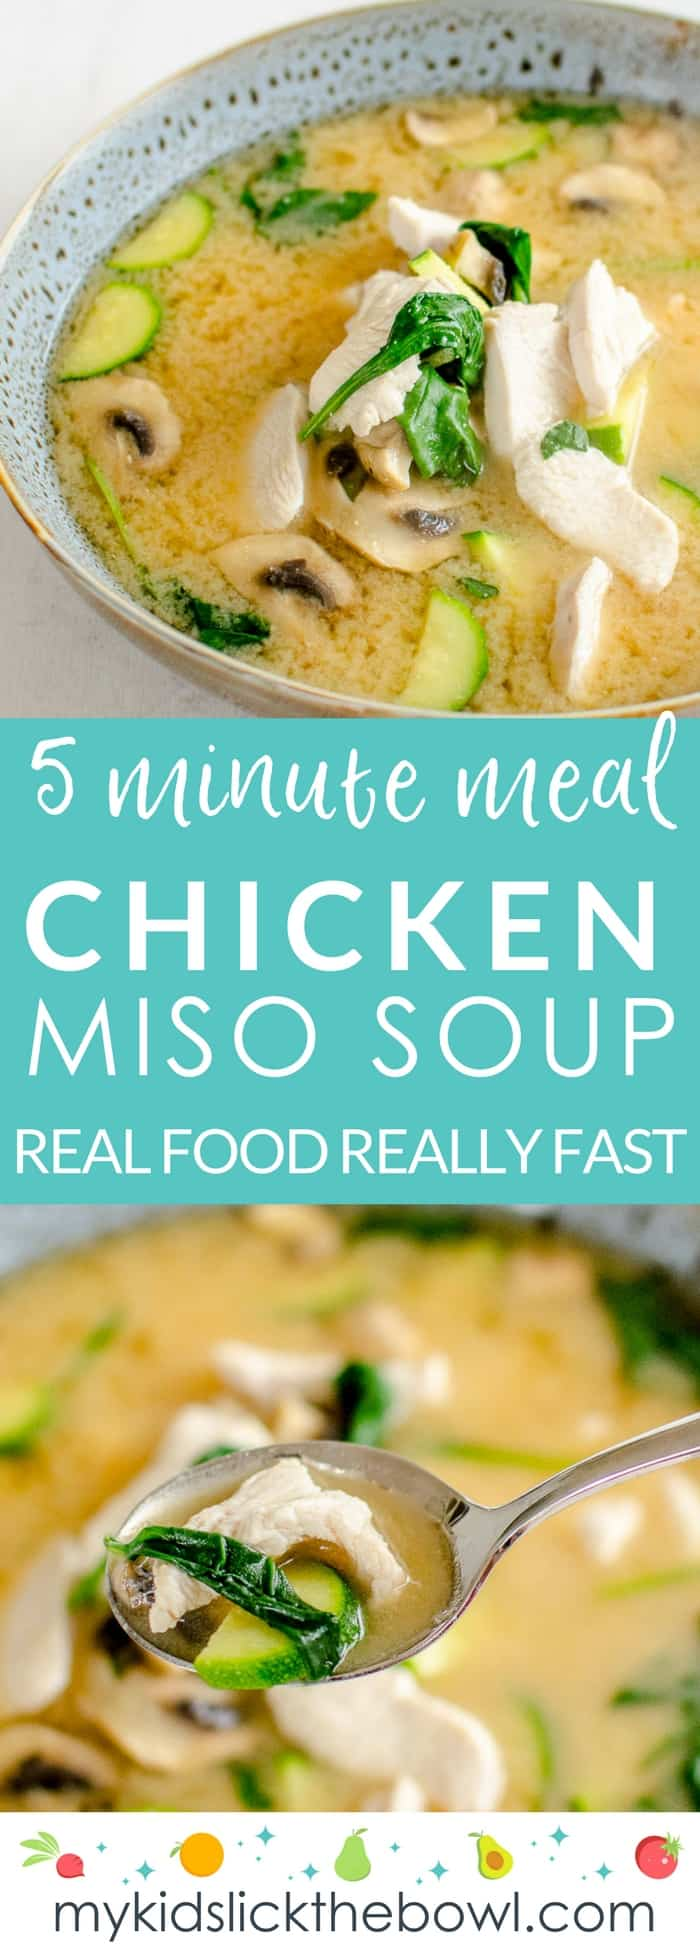 5 Minute Meals - Chicken Miso Soup | My Kids Lick The Bowl